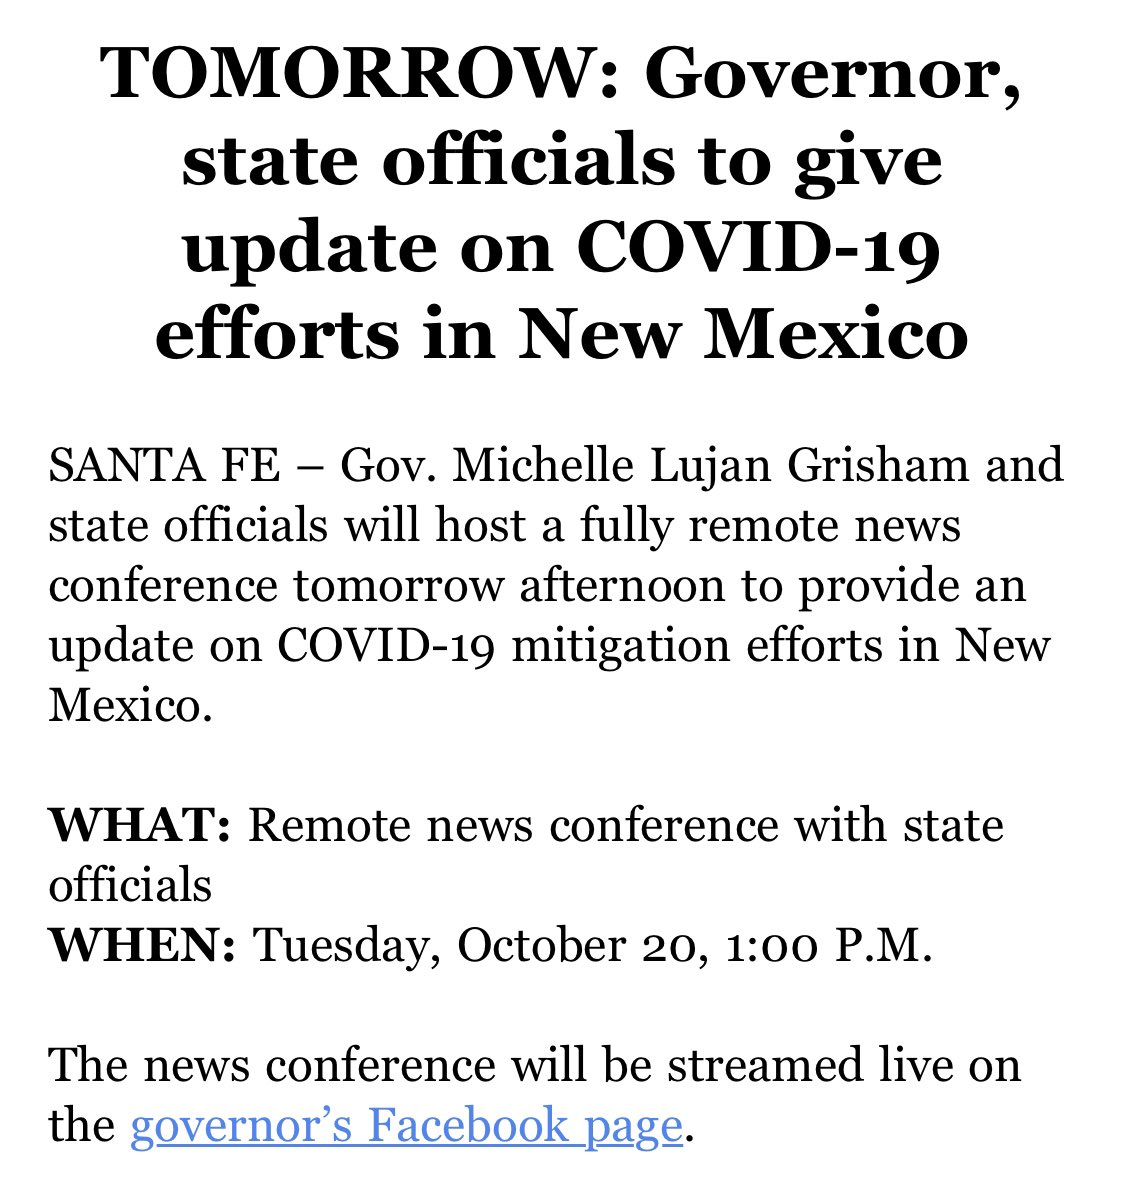 Attention: tune in tomorrow to @GovMLG's Facebook page for updates. https://t.co/XIhiG5glAw